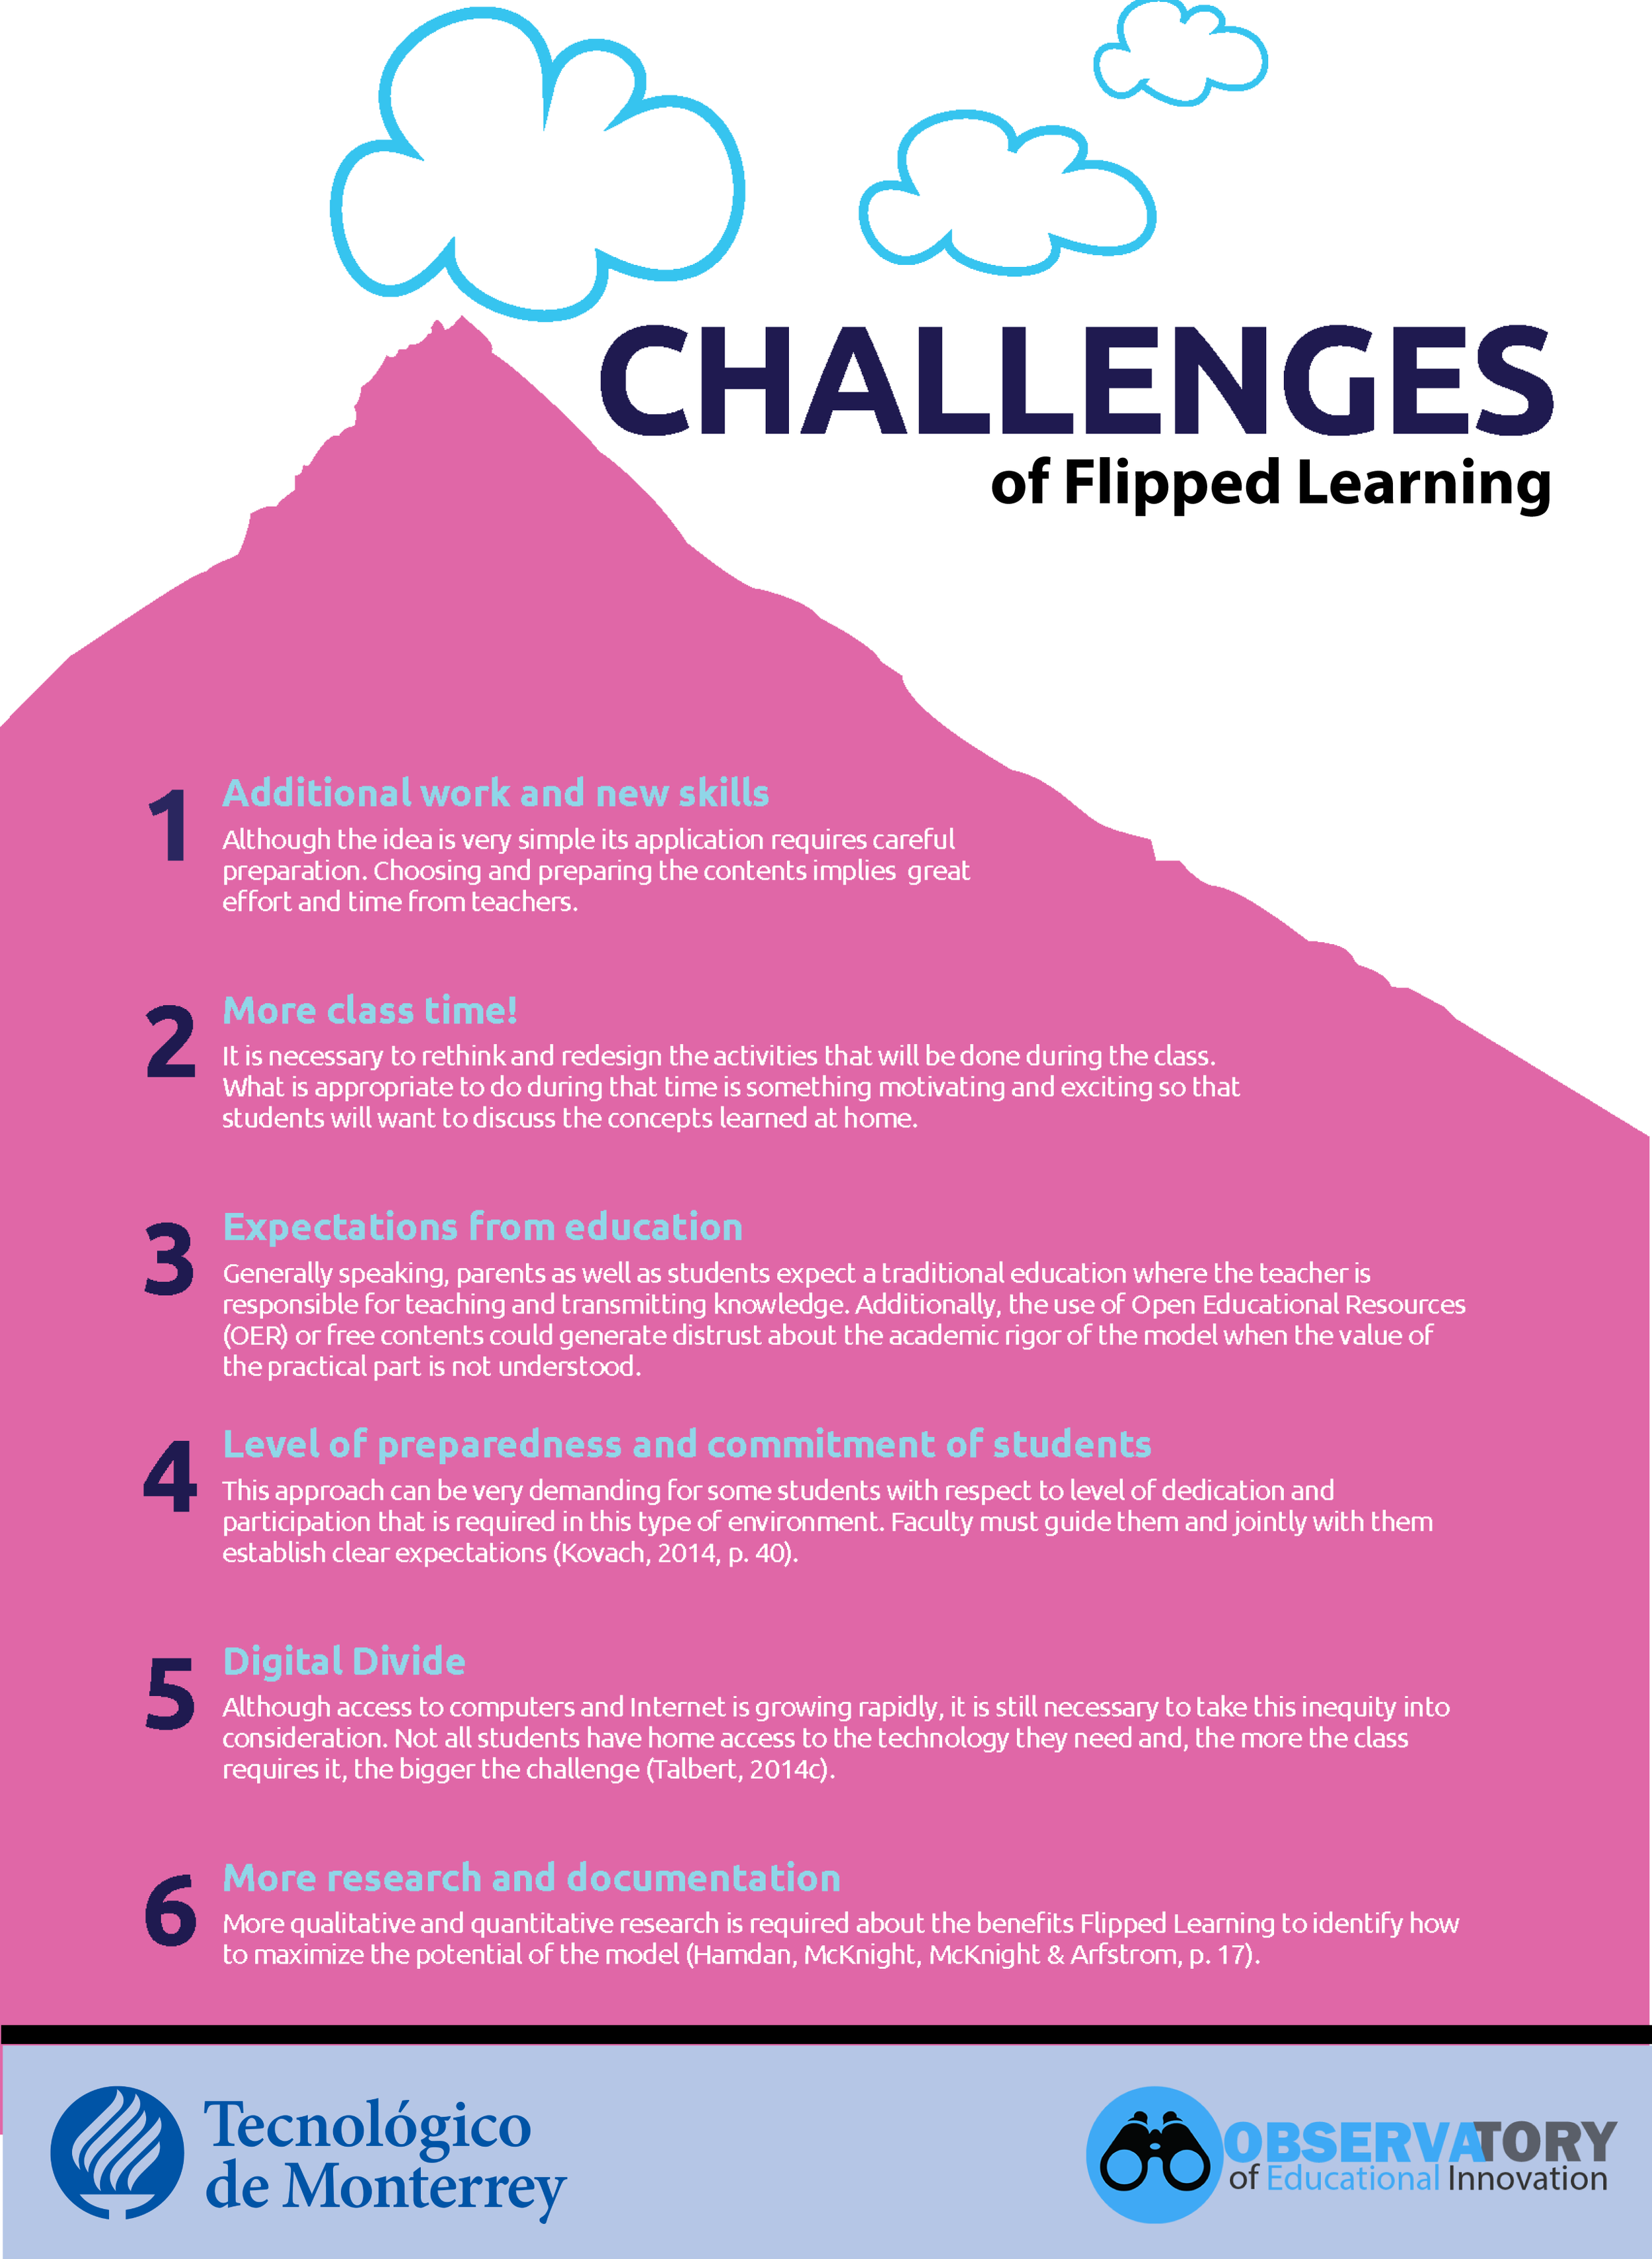 Flipped Learning Challenges